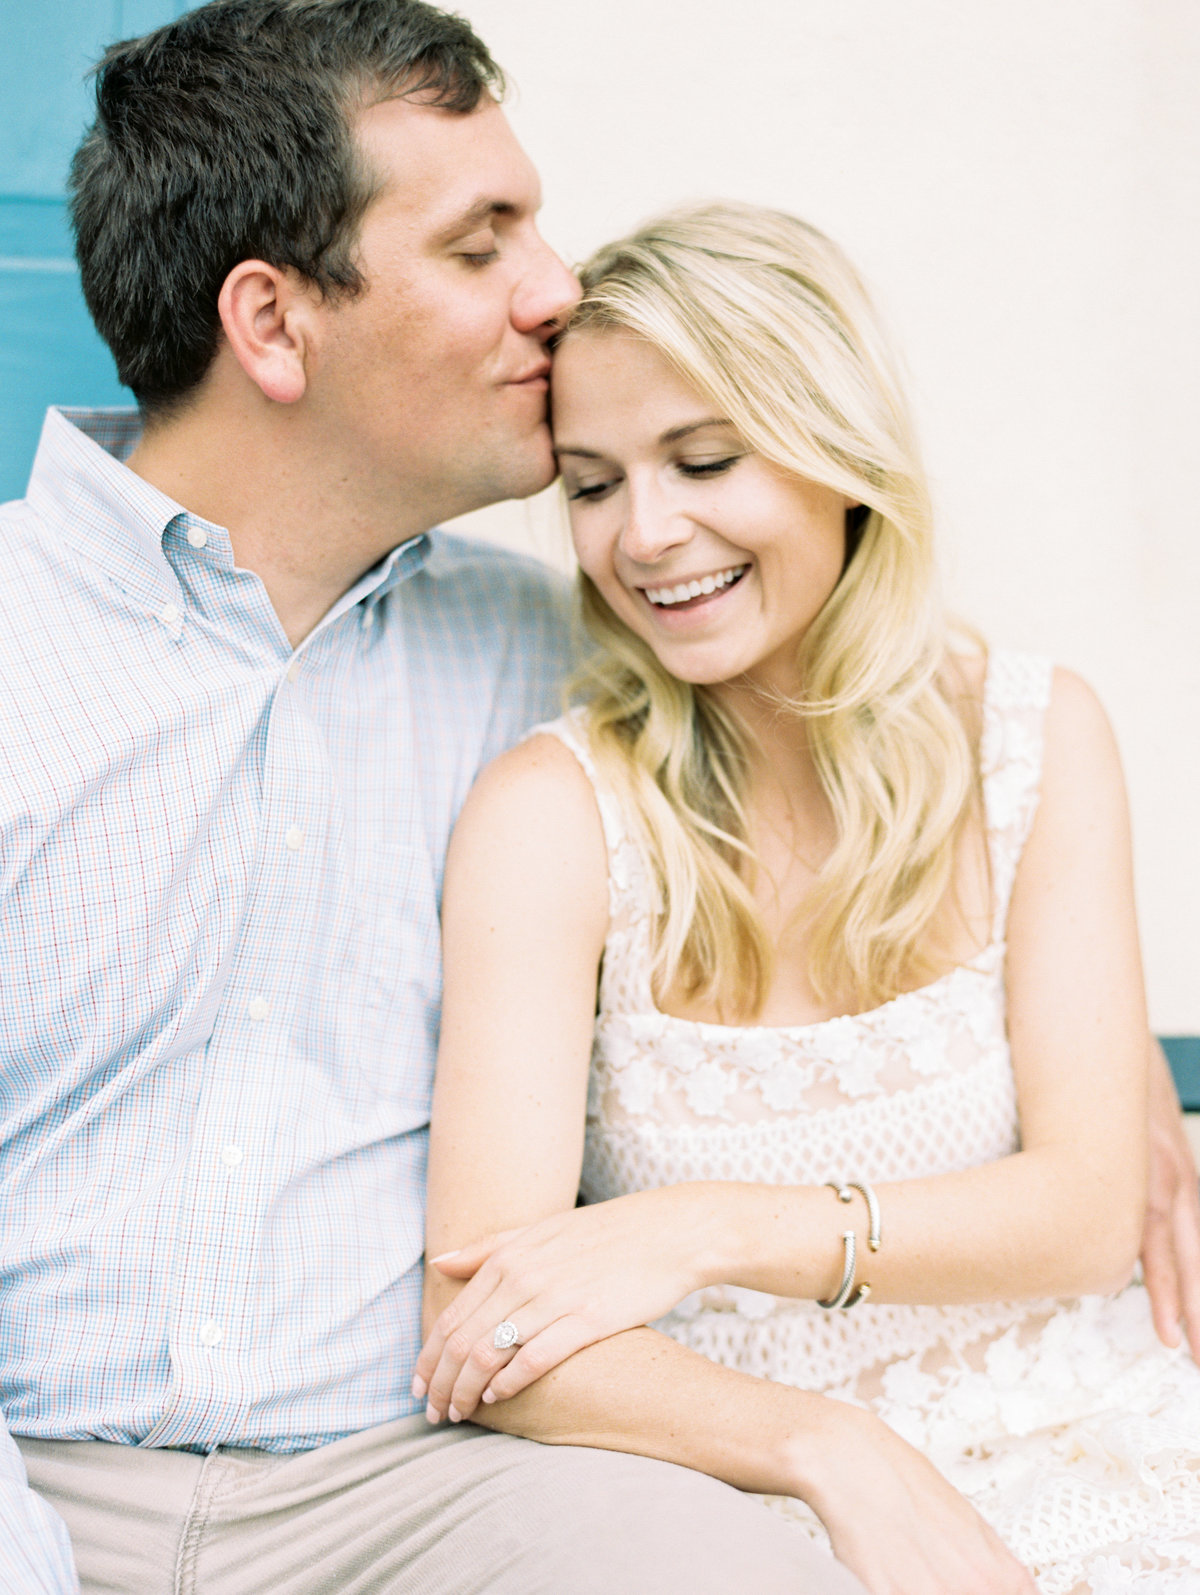 charleston-engagement-photos-wedding-photographer-philip-casey-photo-013